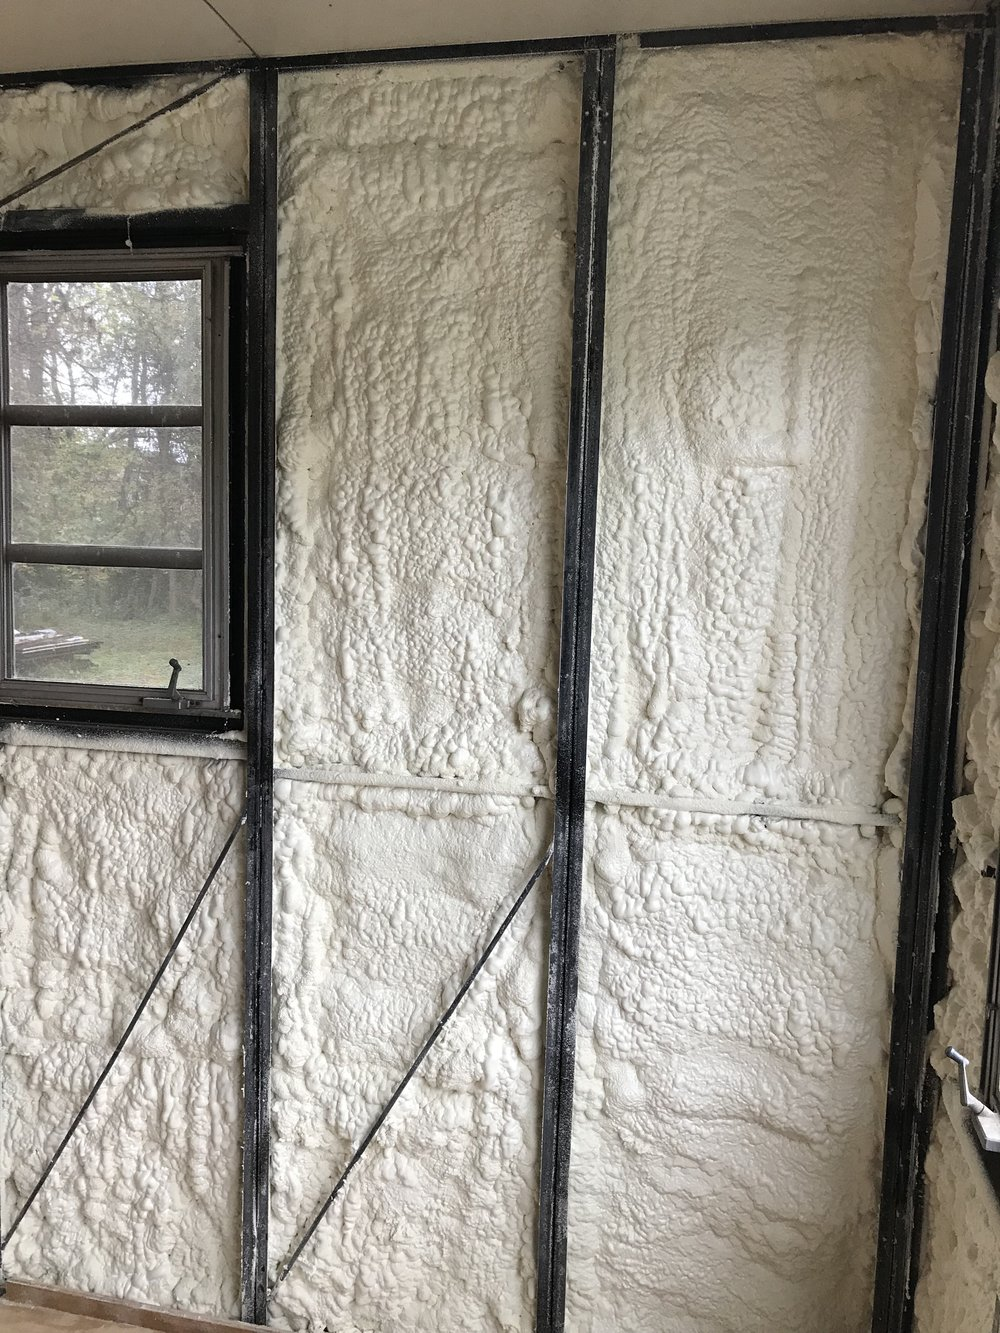 21st century foam insulation will keep this old house warm and dry.